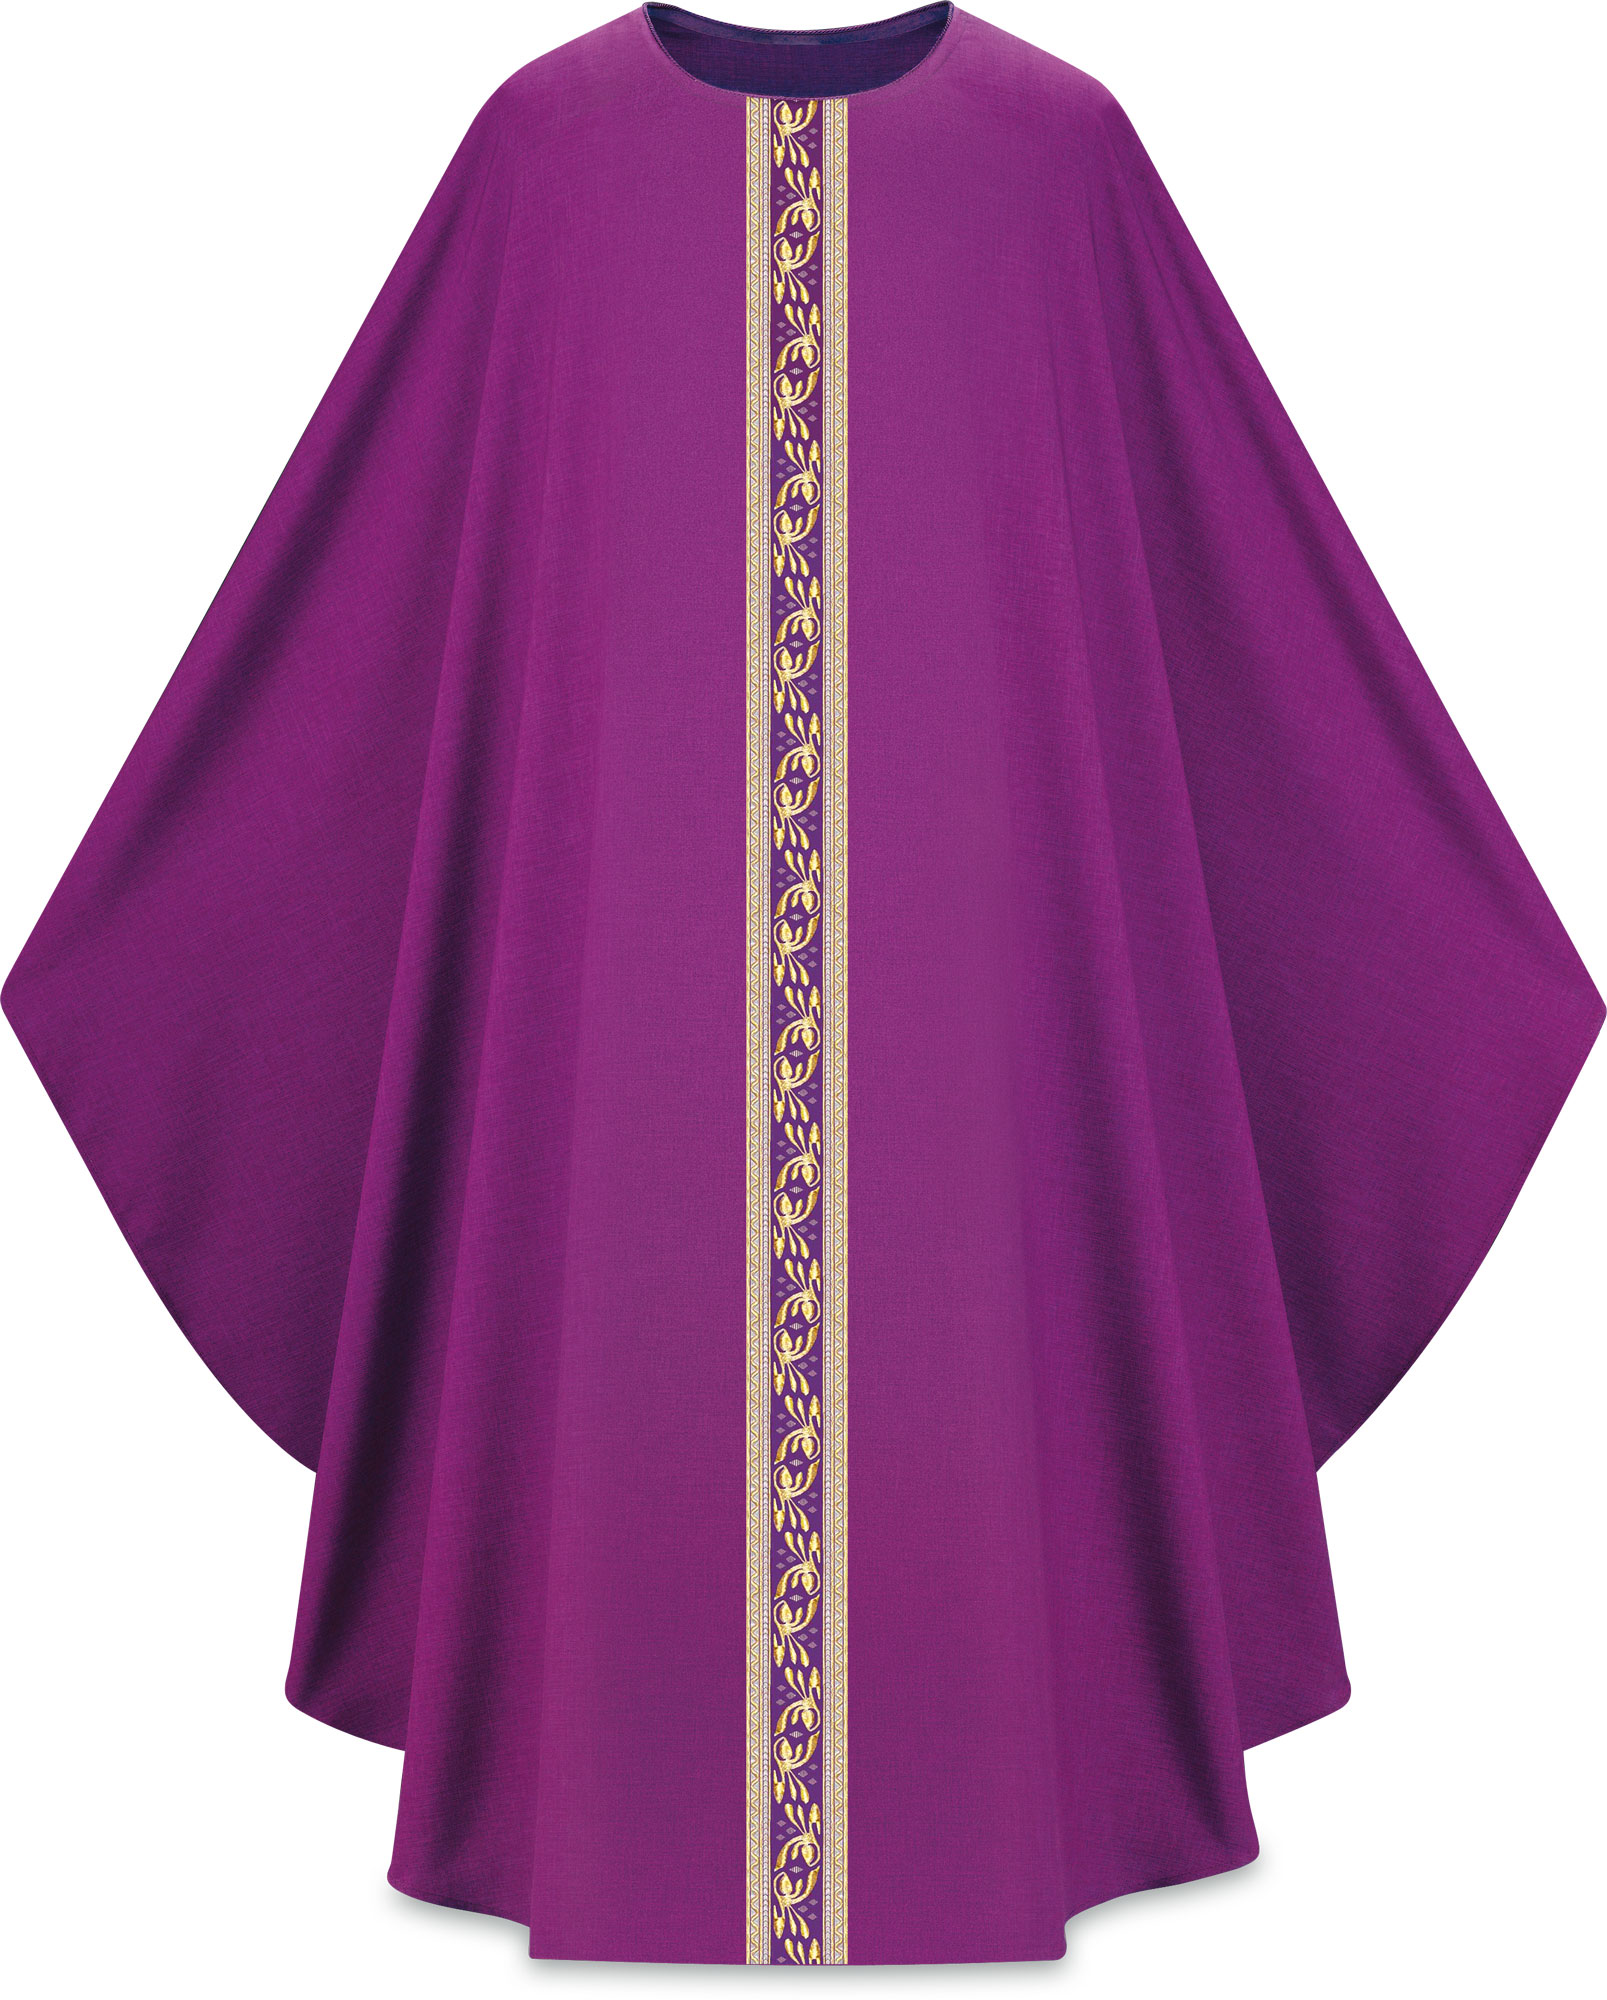 Chasuble - 5184 Purple